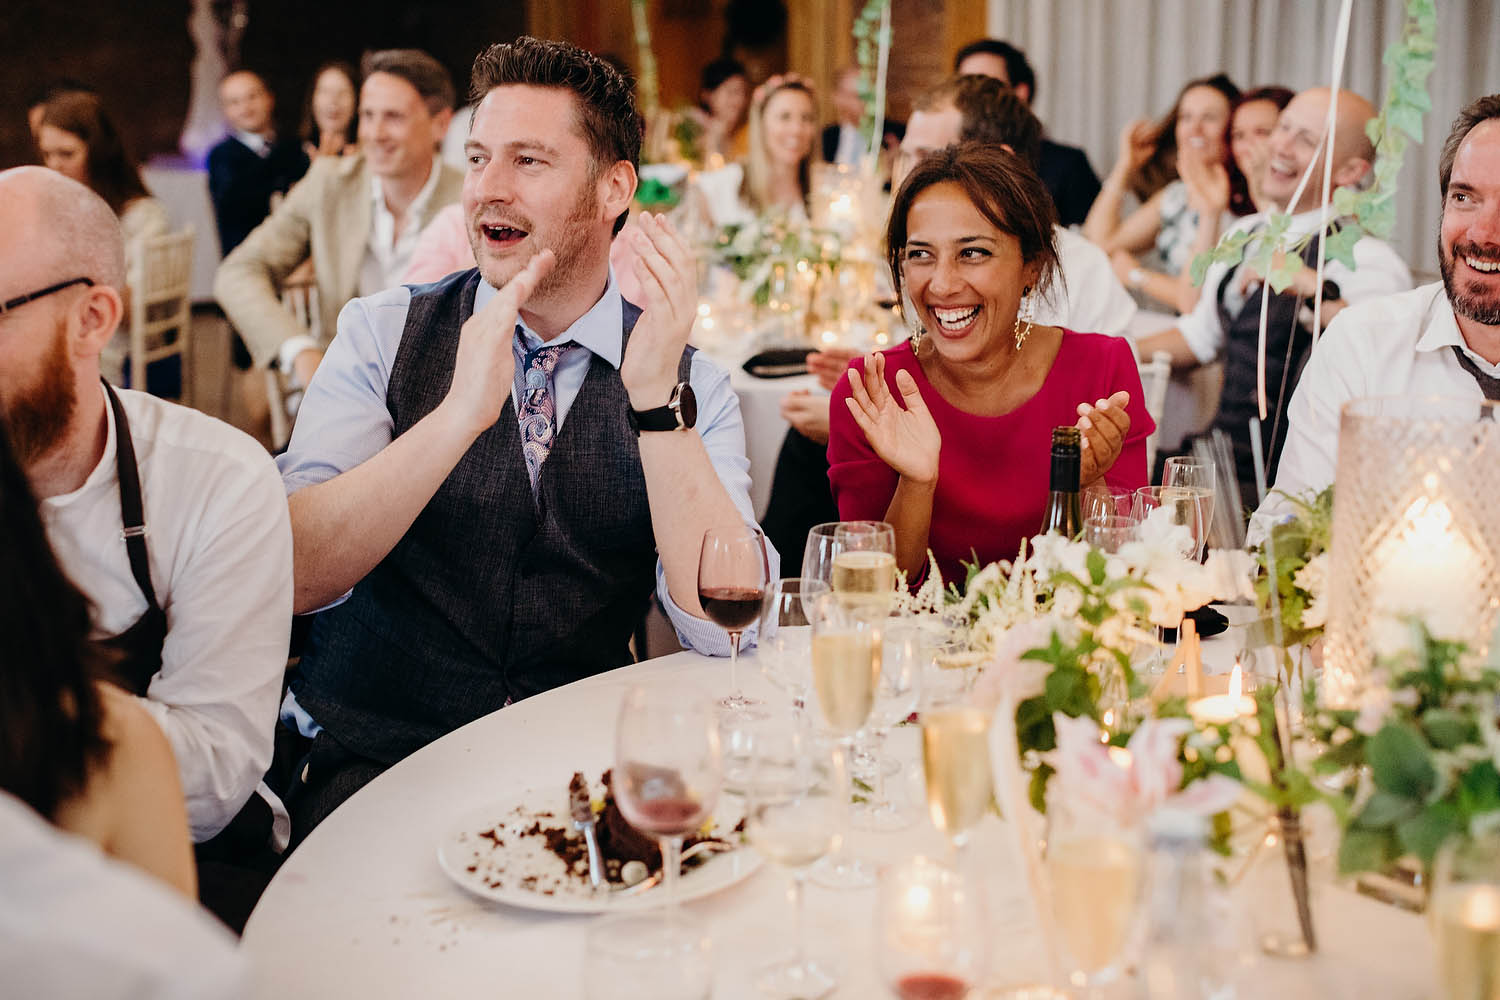 guests clapping speeches